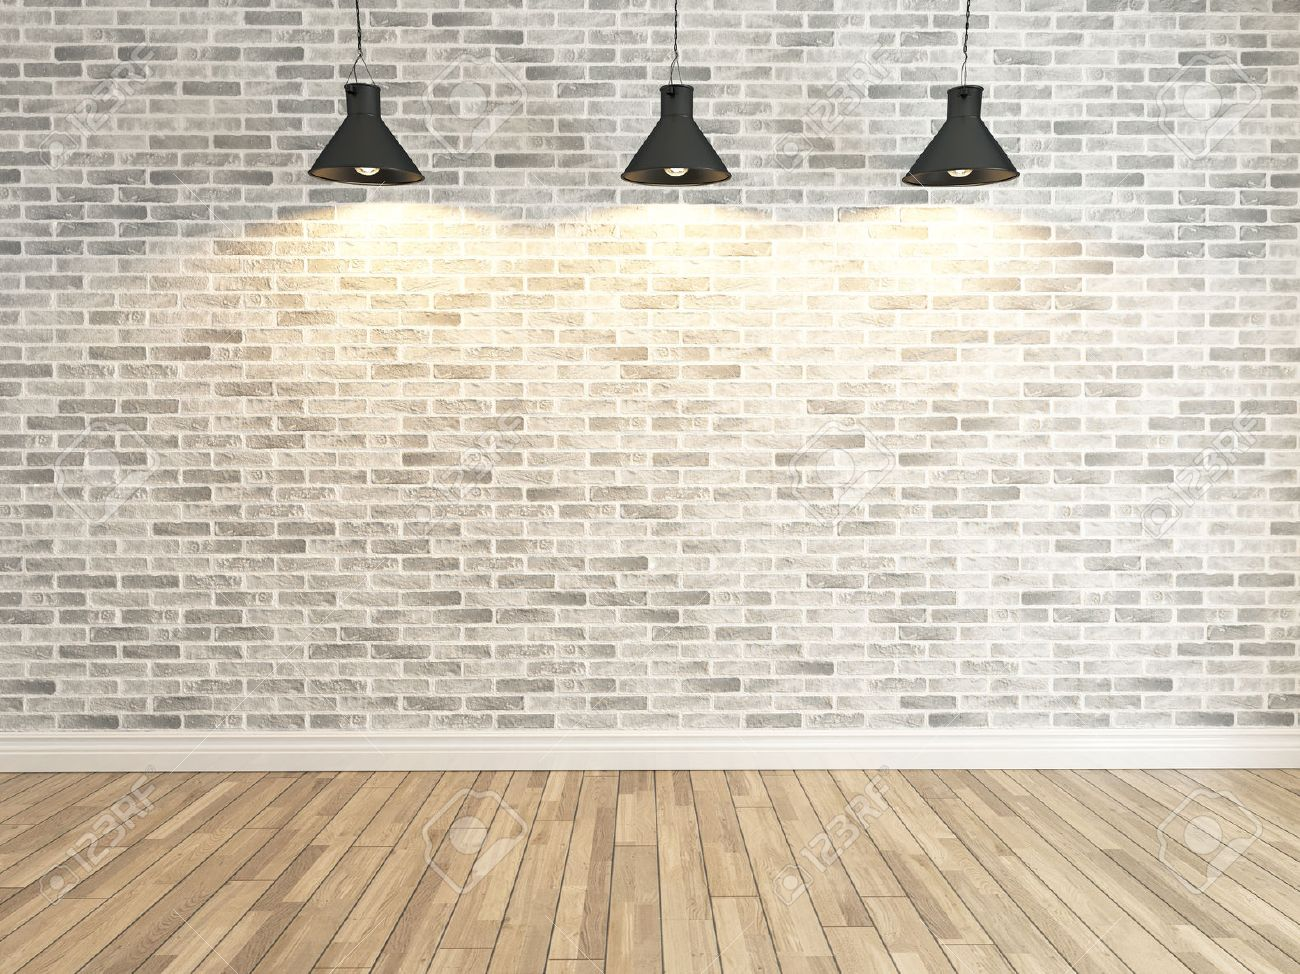 Interior White Brick Wall Decoration Under Three Light, Interior Wall  Pattern And Background Stock Photo